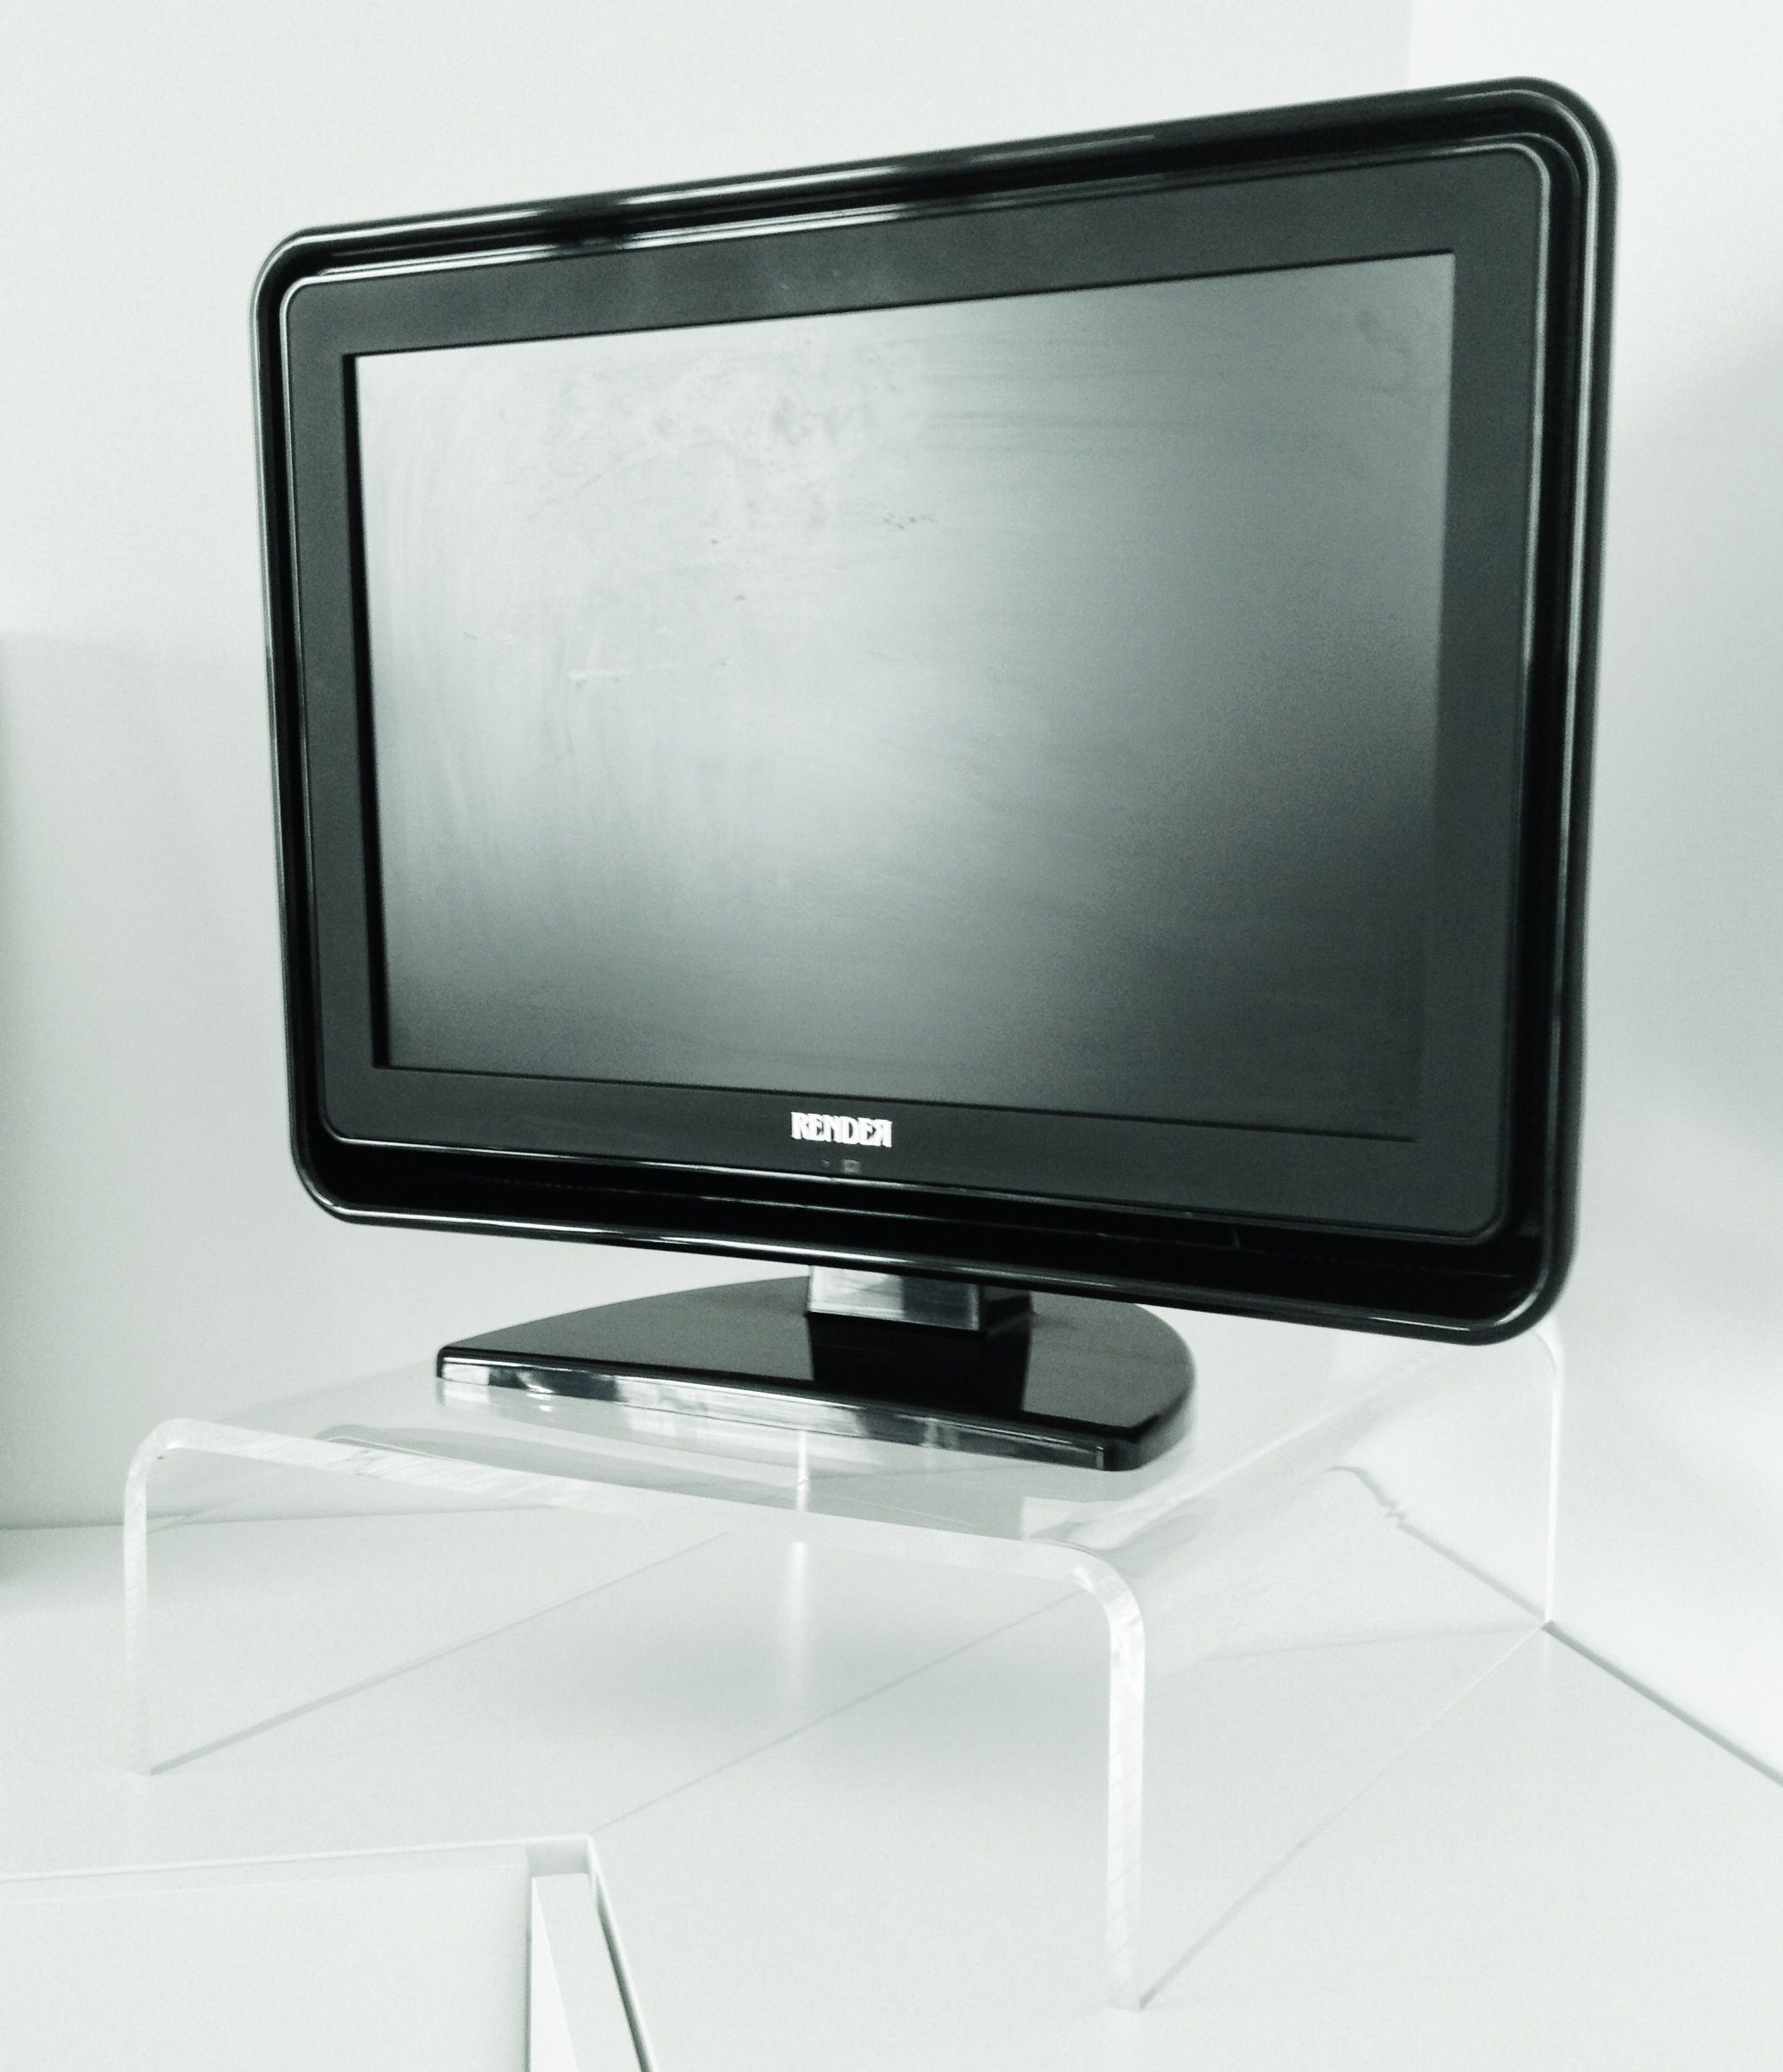 Acrylic Stand For Tv Plasma And Desktop Monitor Design  # Maison En Ecran Plasma